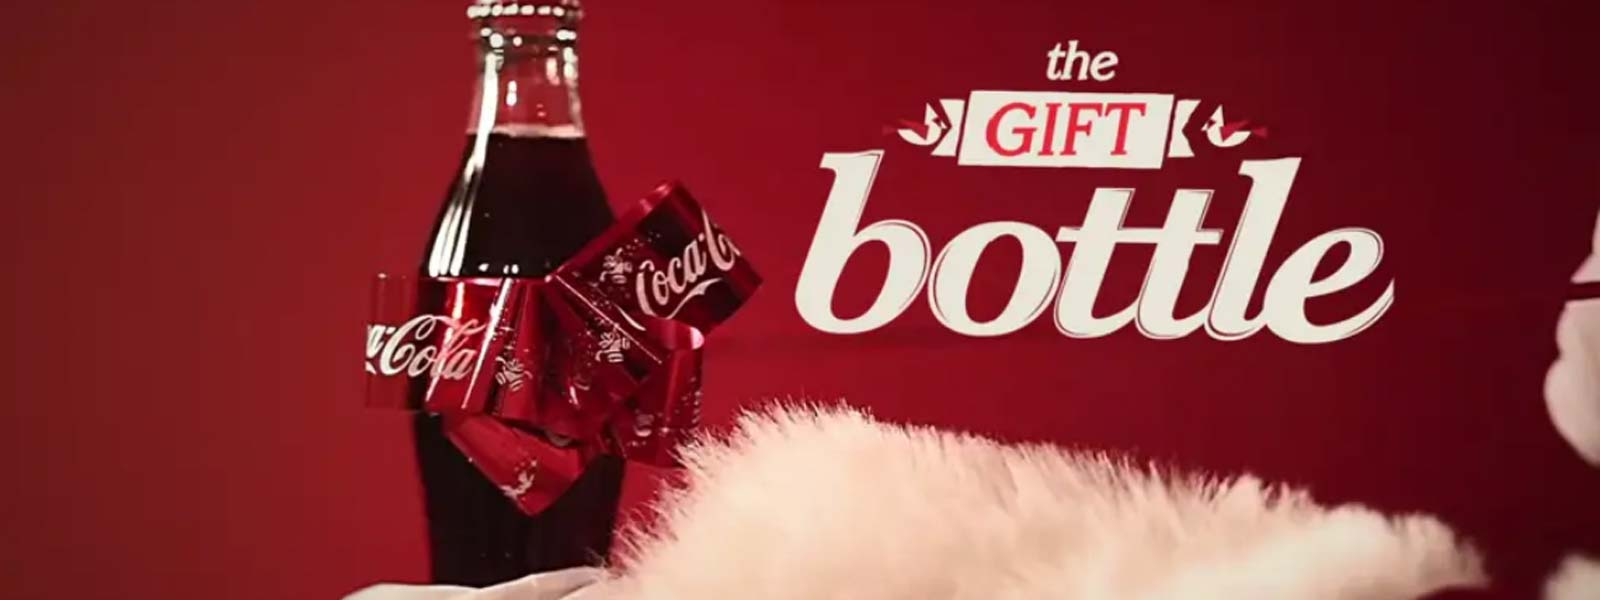 Chiến Dịch marketing hay - The Gift bottle coca-cola